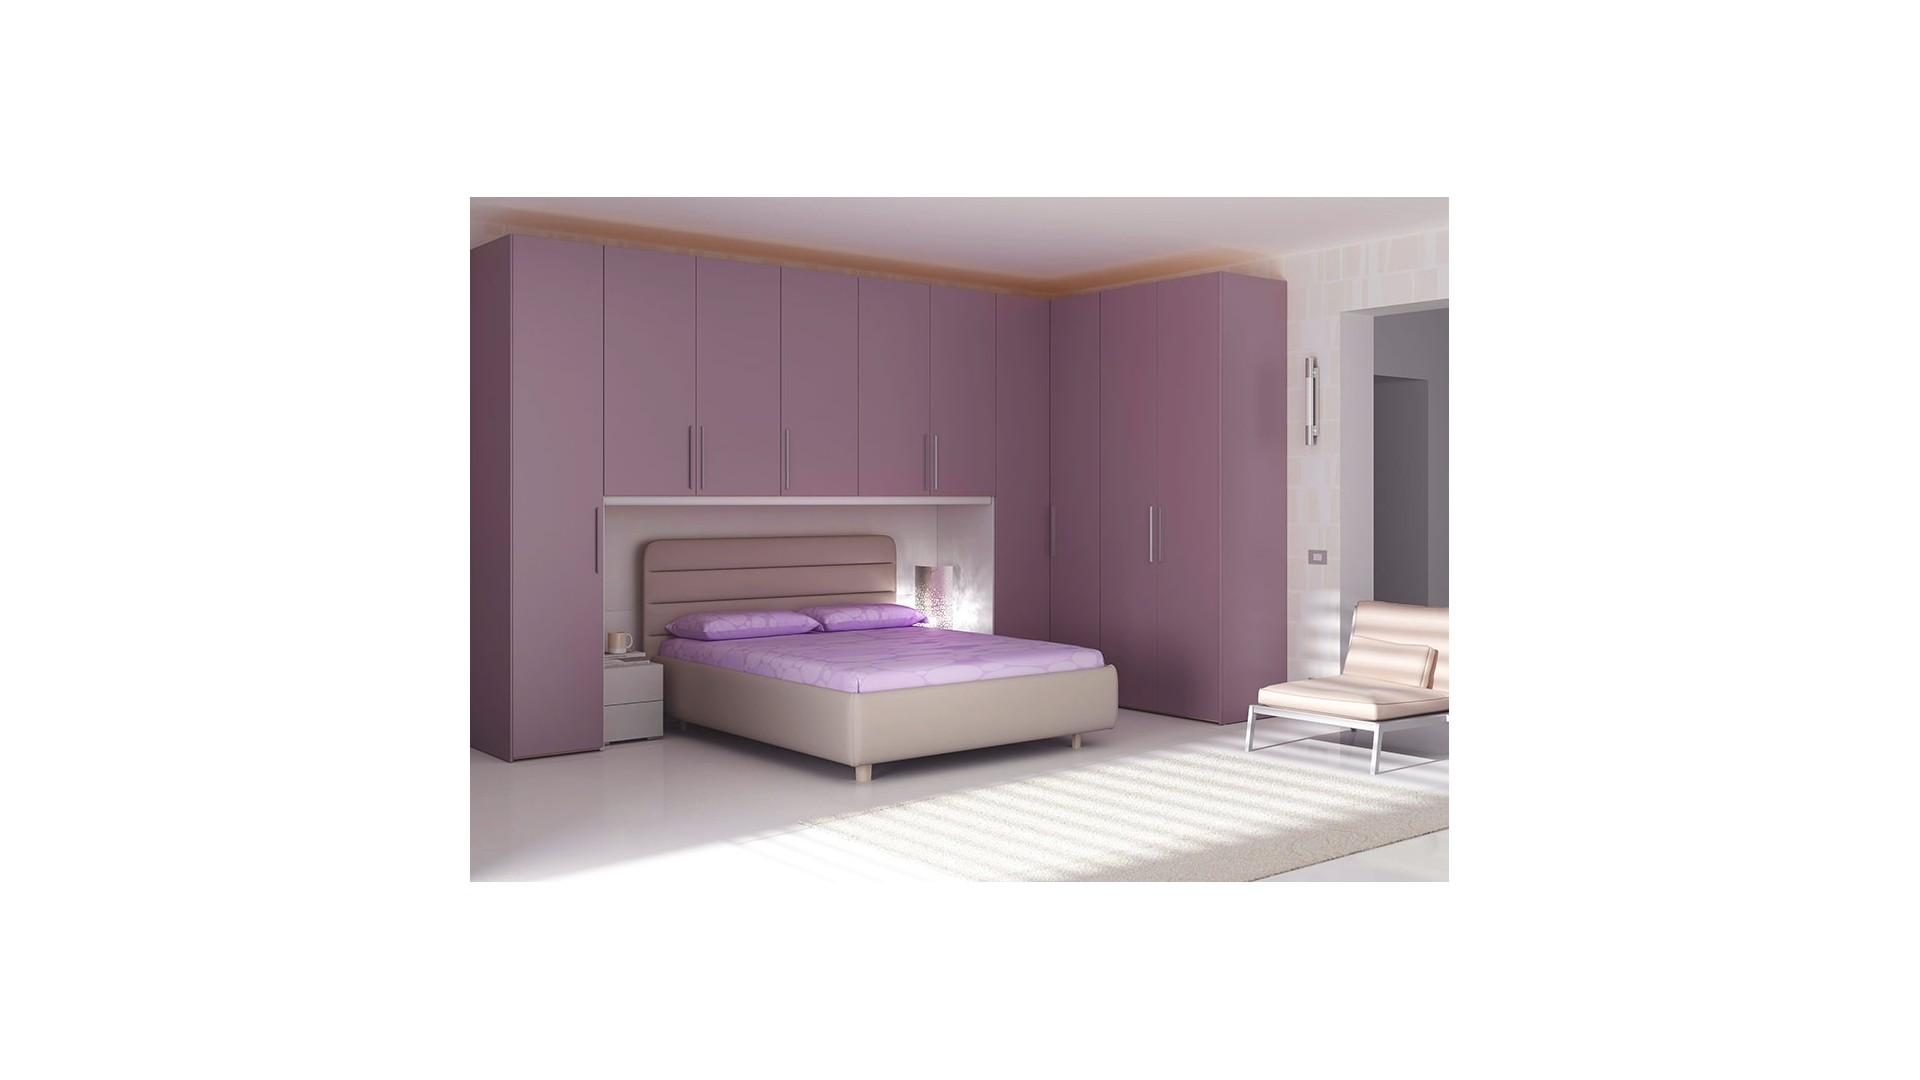 chambre adulte compl te avec pont design moretti compact so nuit. Black Bedroom Furniture Sets. Home Design Ideas